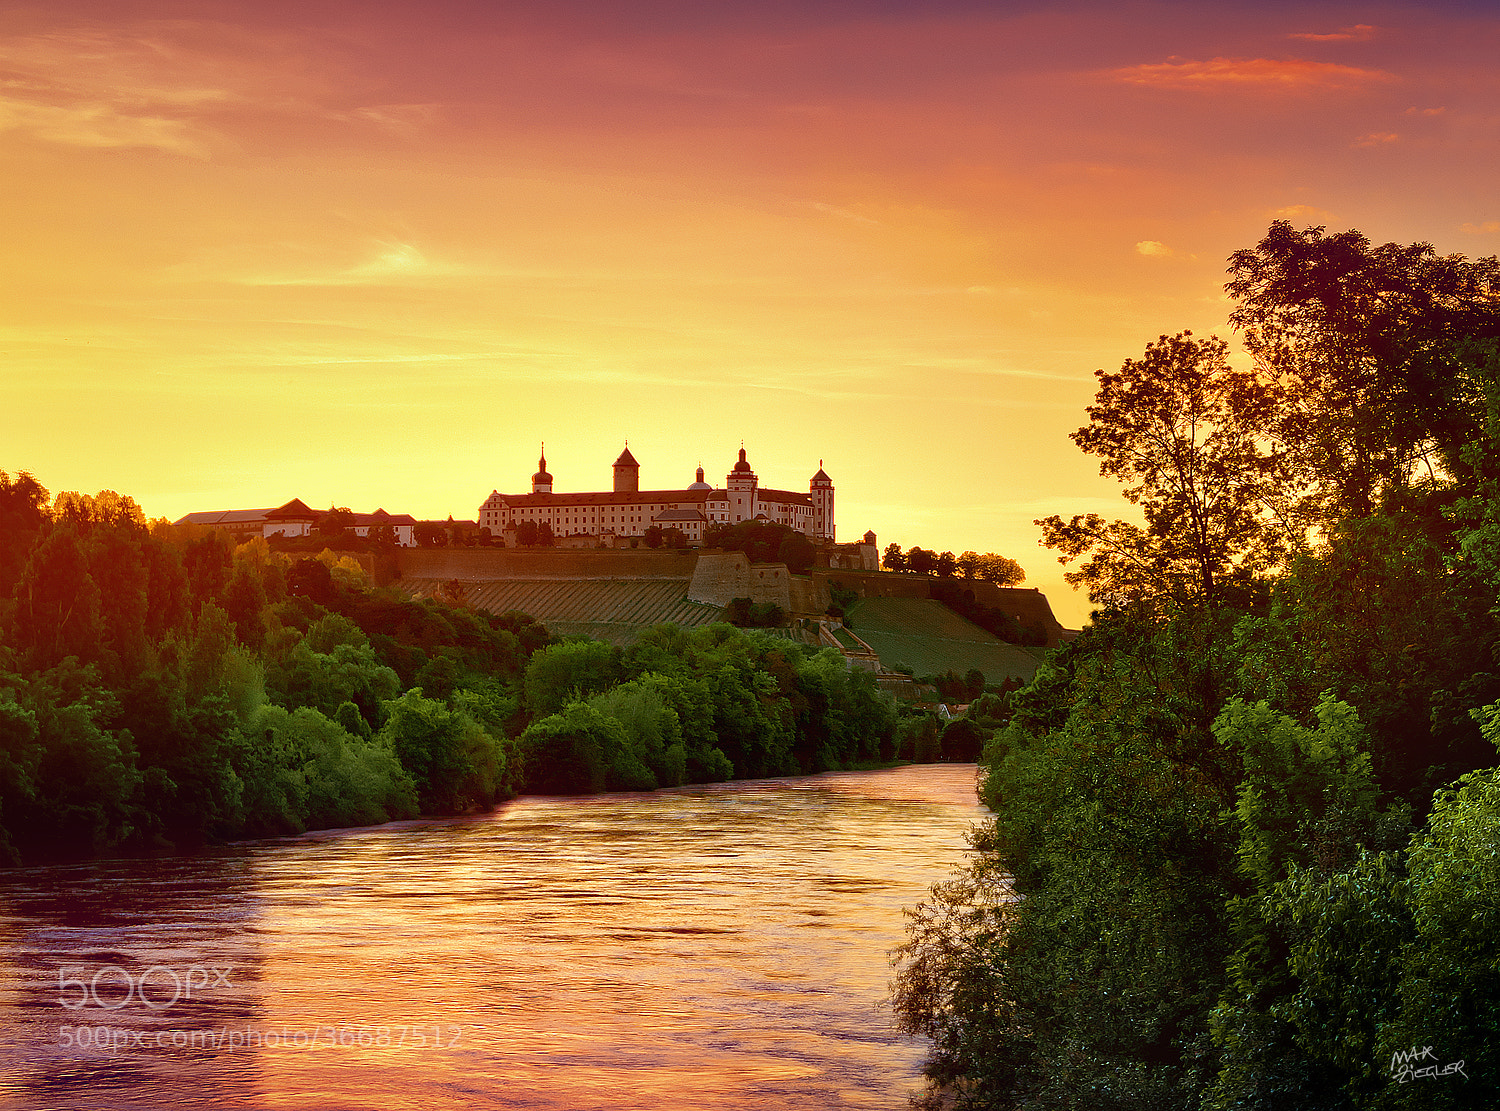 Photograph würzburg X by Max Ziegler on 500px